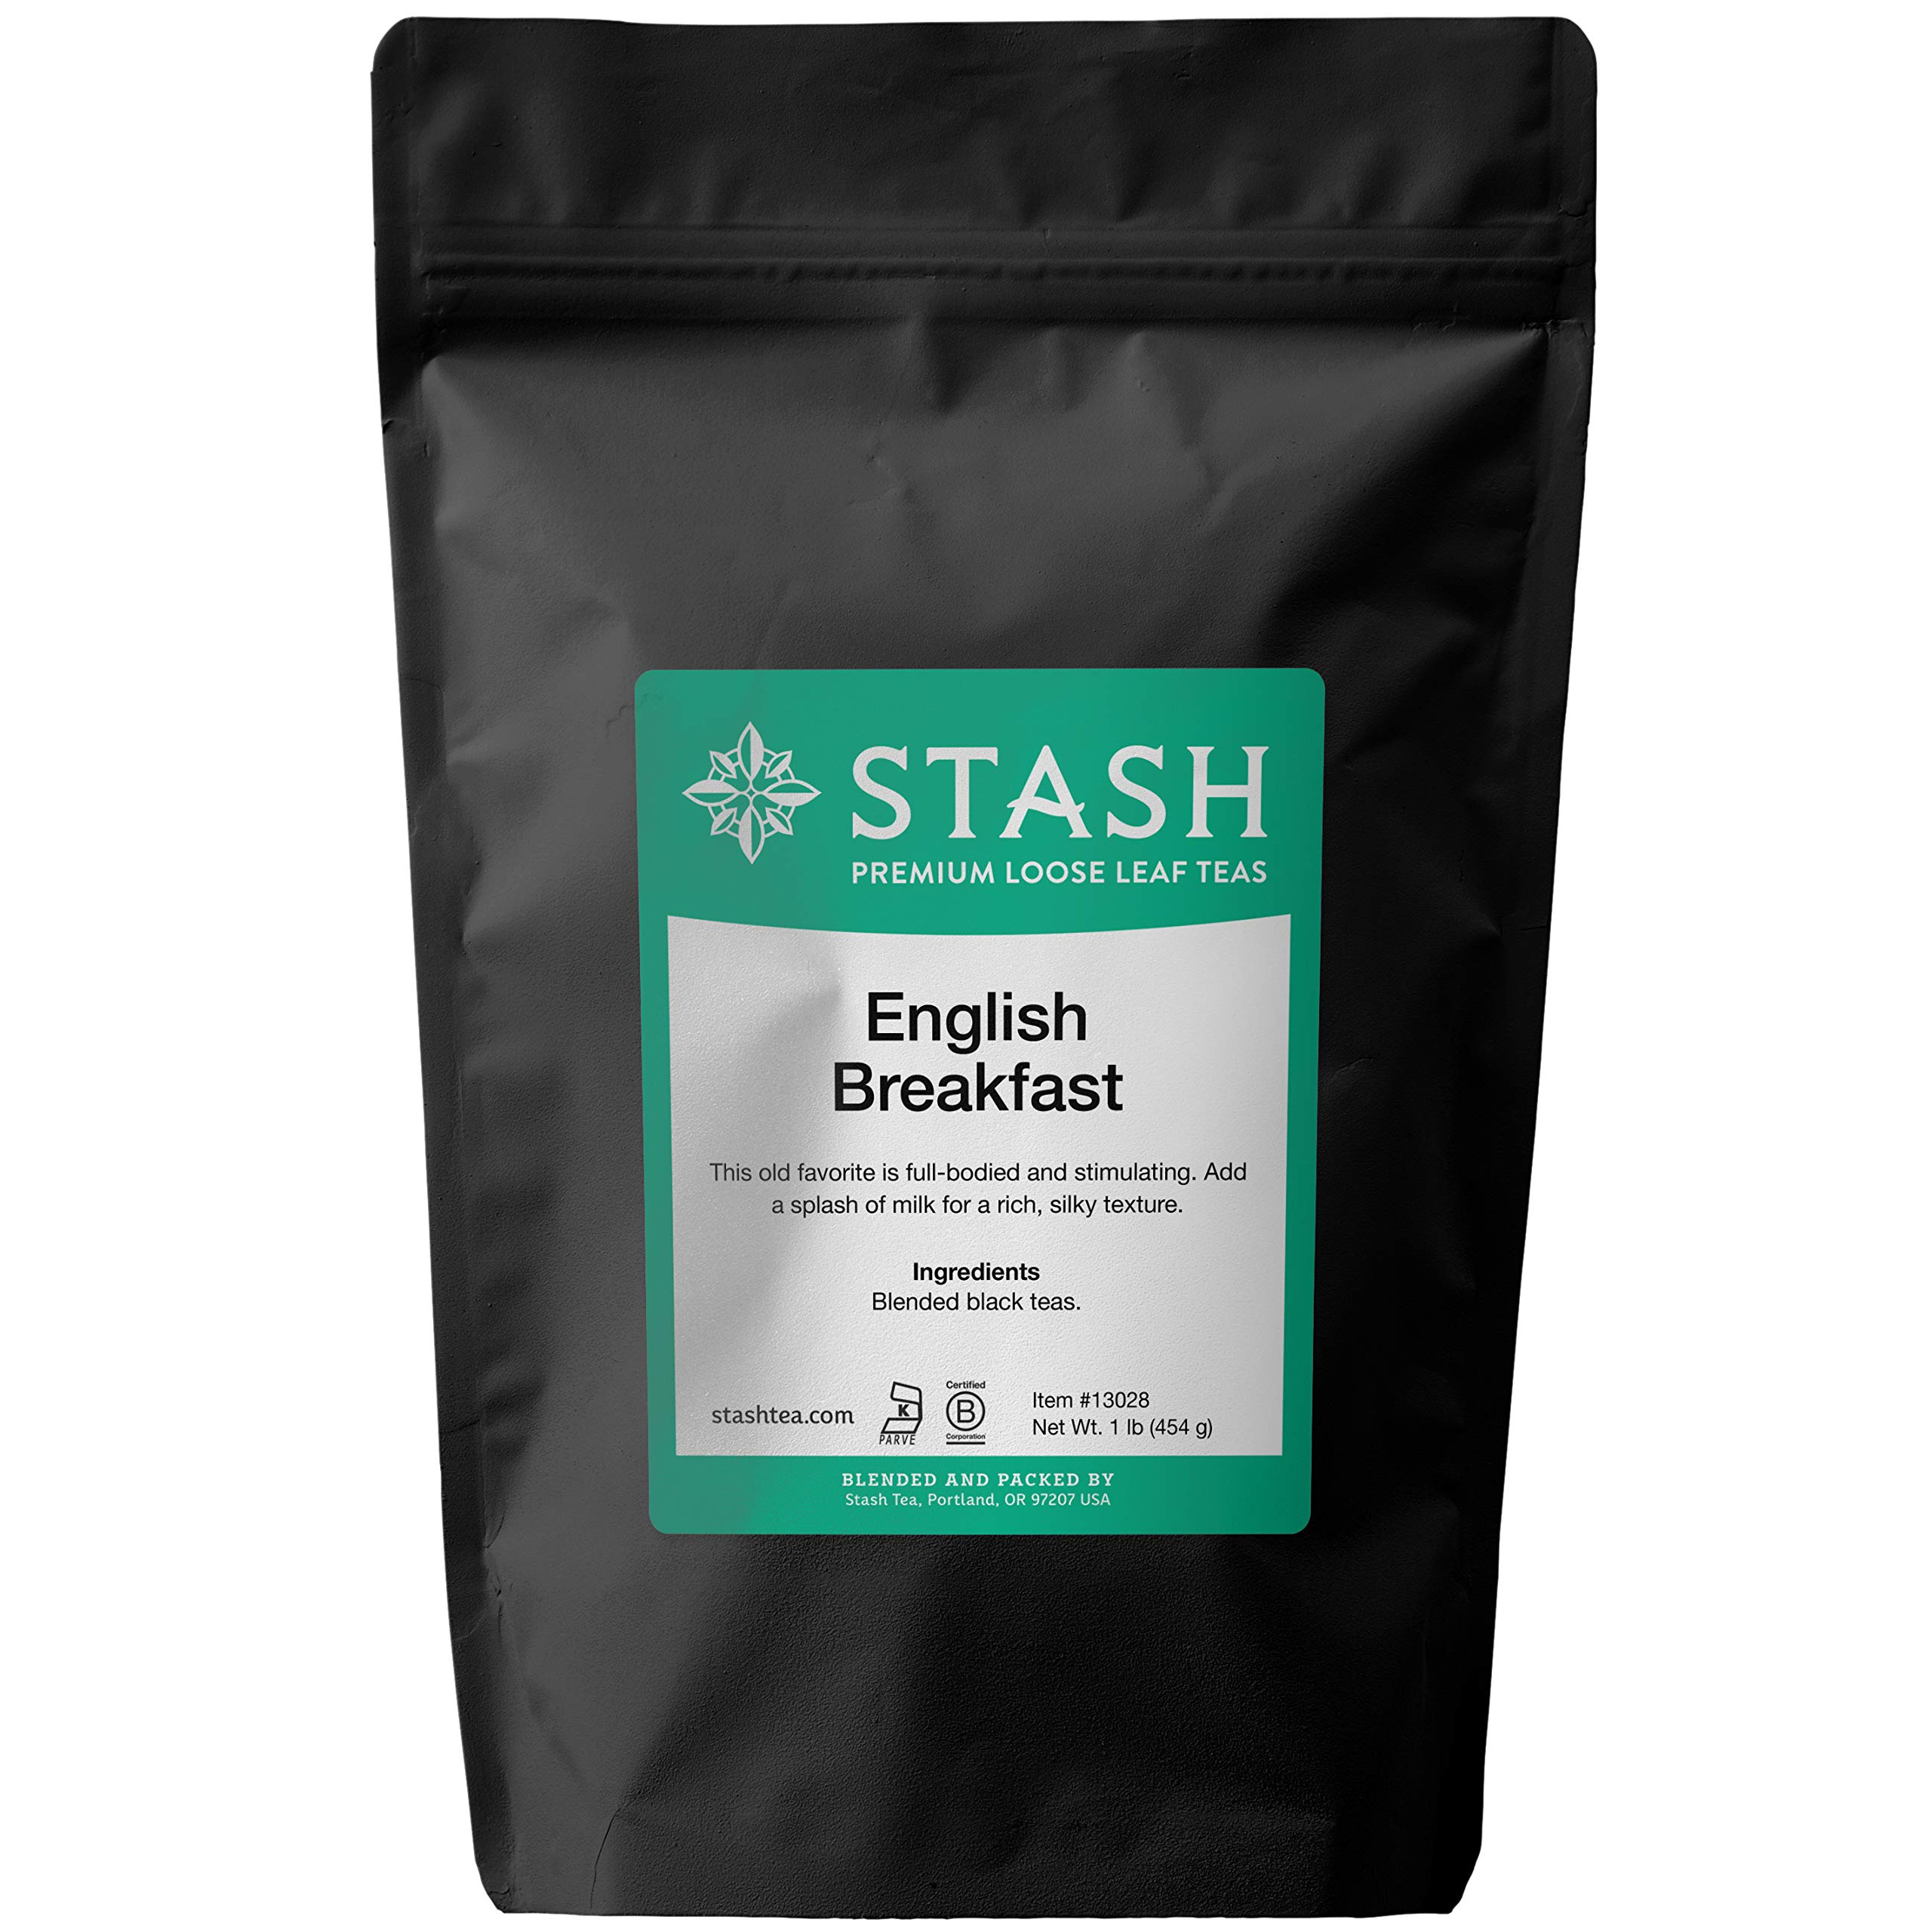 Stash Tea English Breakfast Loose Leaf Tea 16 Ounce Loose Leaf Premium Black Tea for Use with Tea Infusers Tea Strainers or Teapots, Drink Hot or Iced, Sweetened or Plain